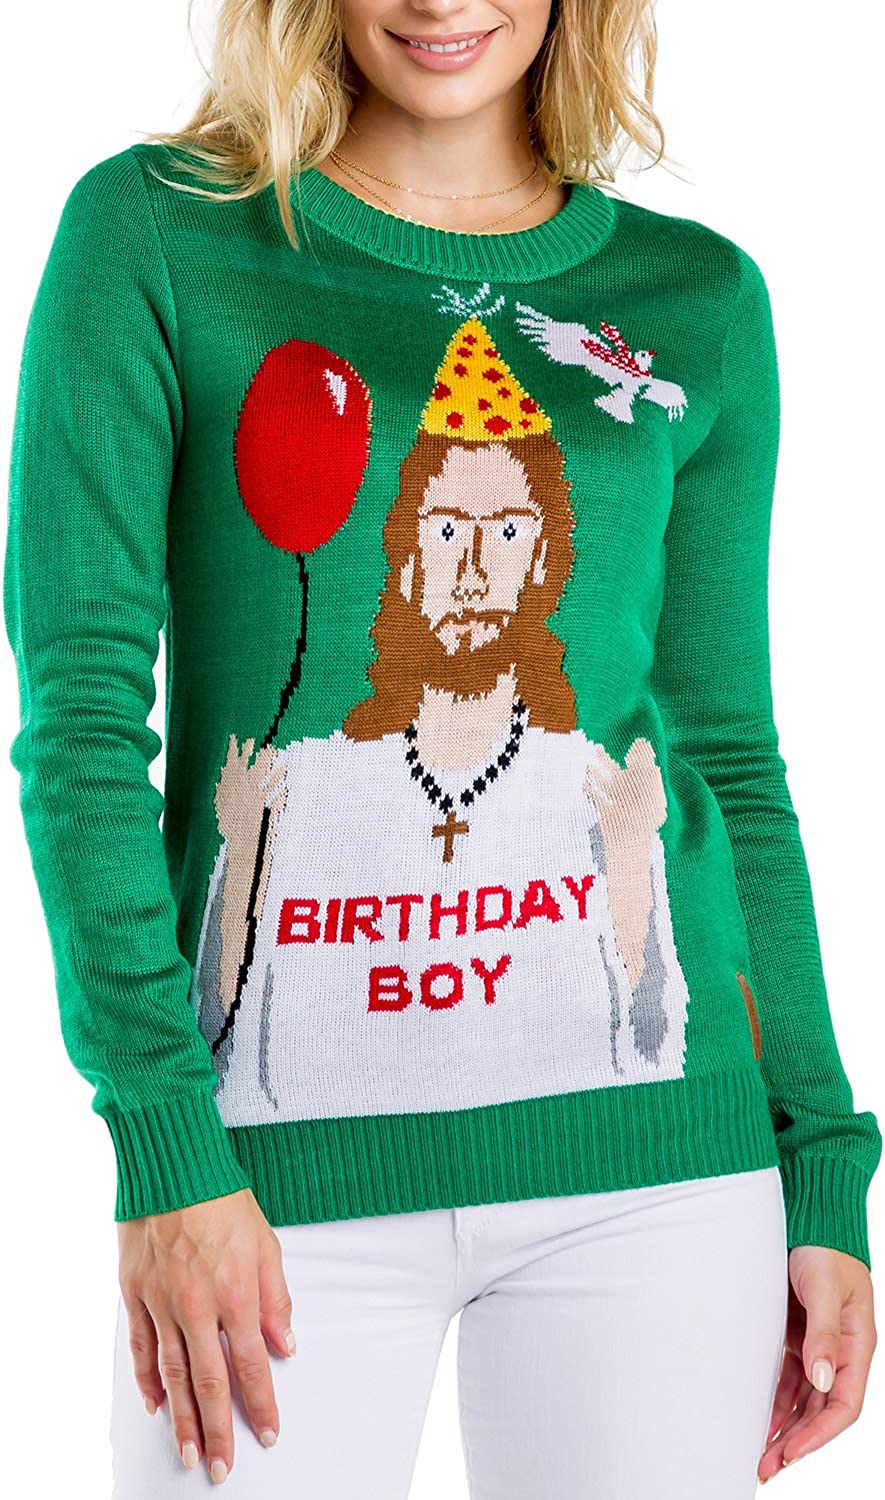 Tipsy Elves Women\'s Ugly Christmas Sweater - Happy Birthday Jesus Sweater  Green